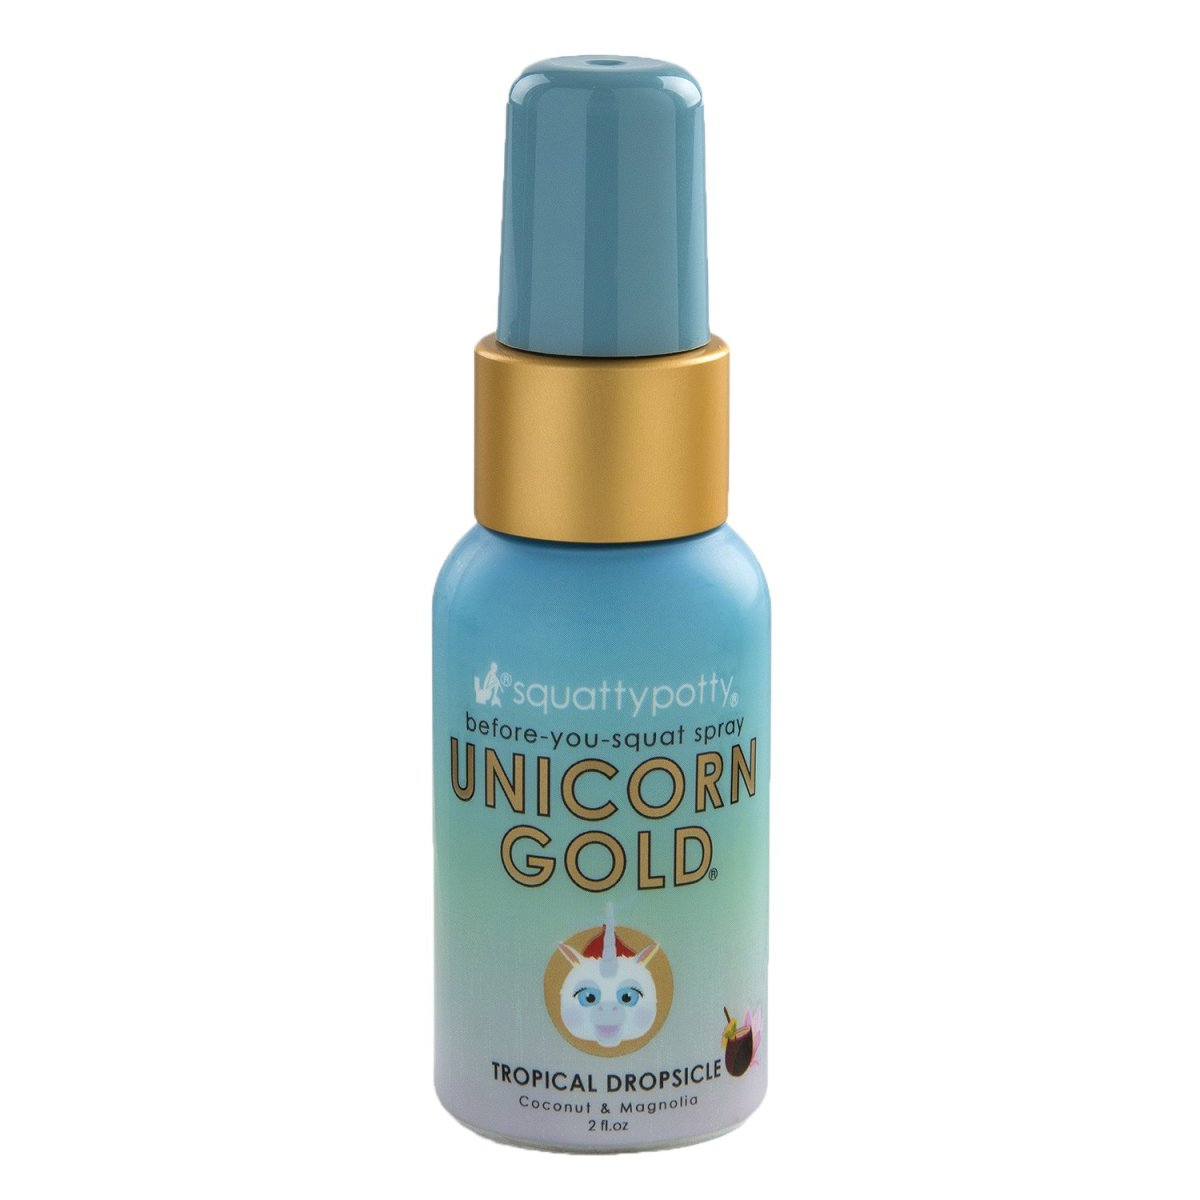 Squatty Potty Unicorn Gold Toilet Spray, Tropical Dropsicle, 2 Ounce